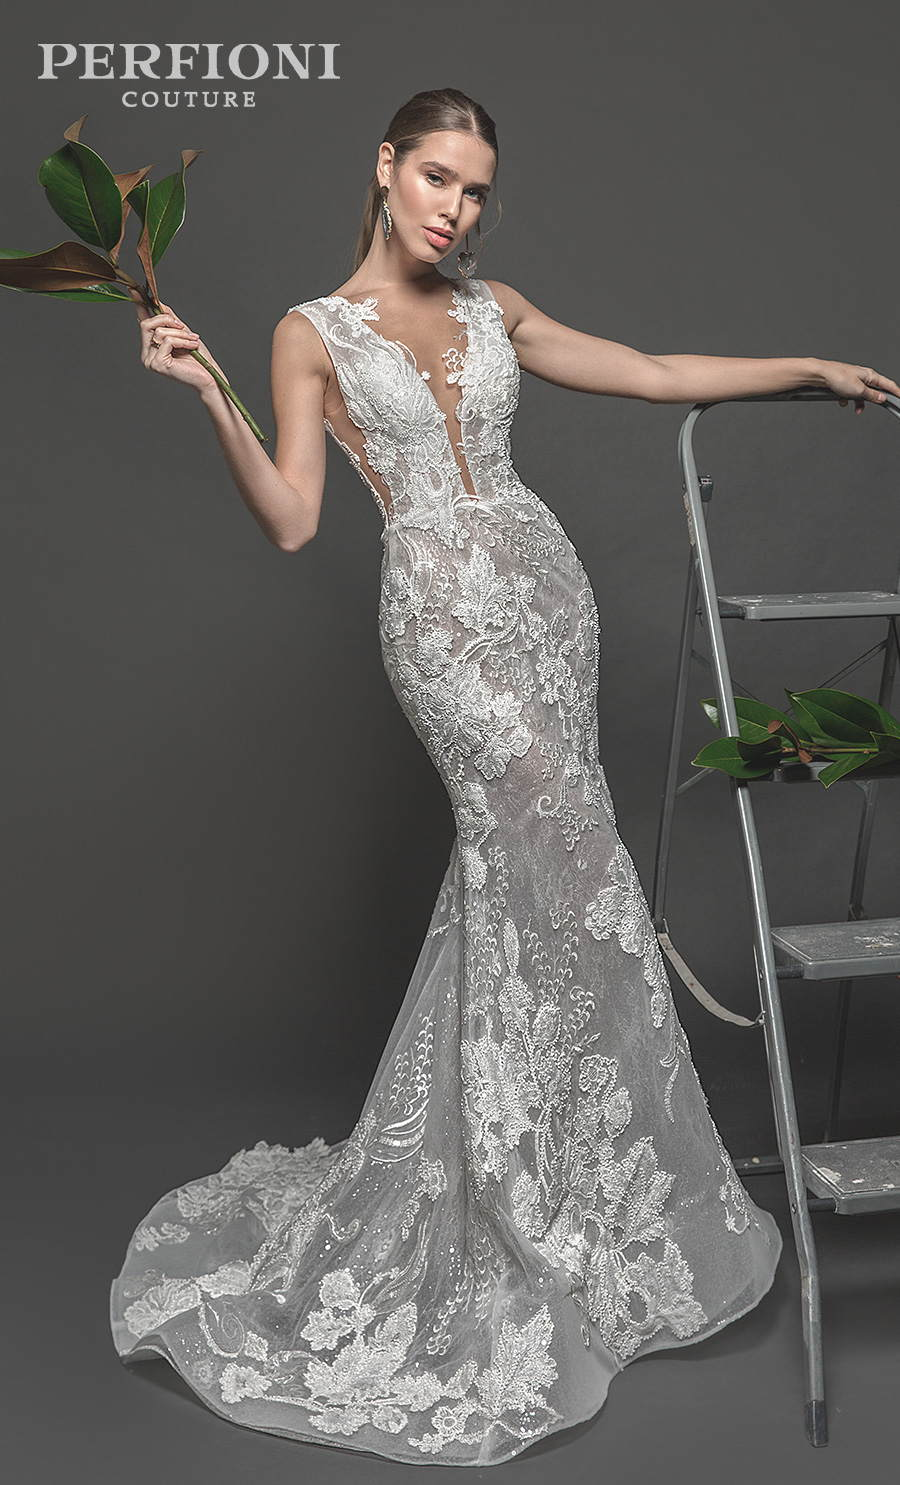 perfioni 2020 flora romance bridal sleeveless deep plunging v neck full embellishment elegant fit and flare wedding dress sweep train (evelyn) mv